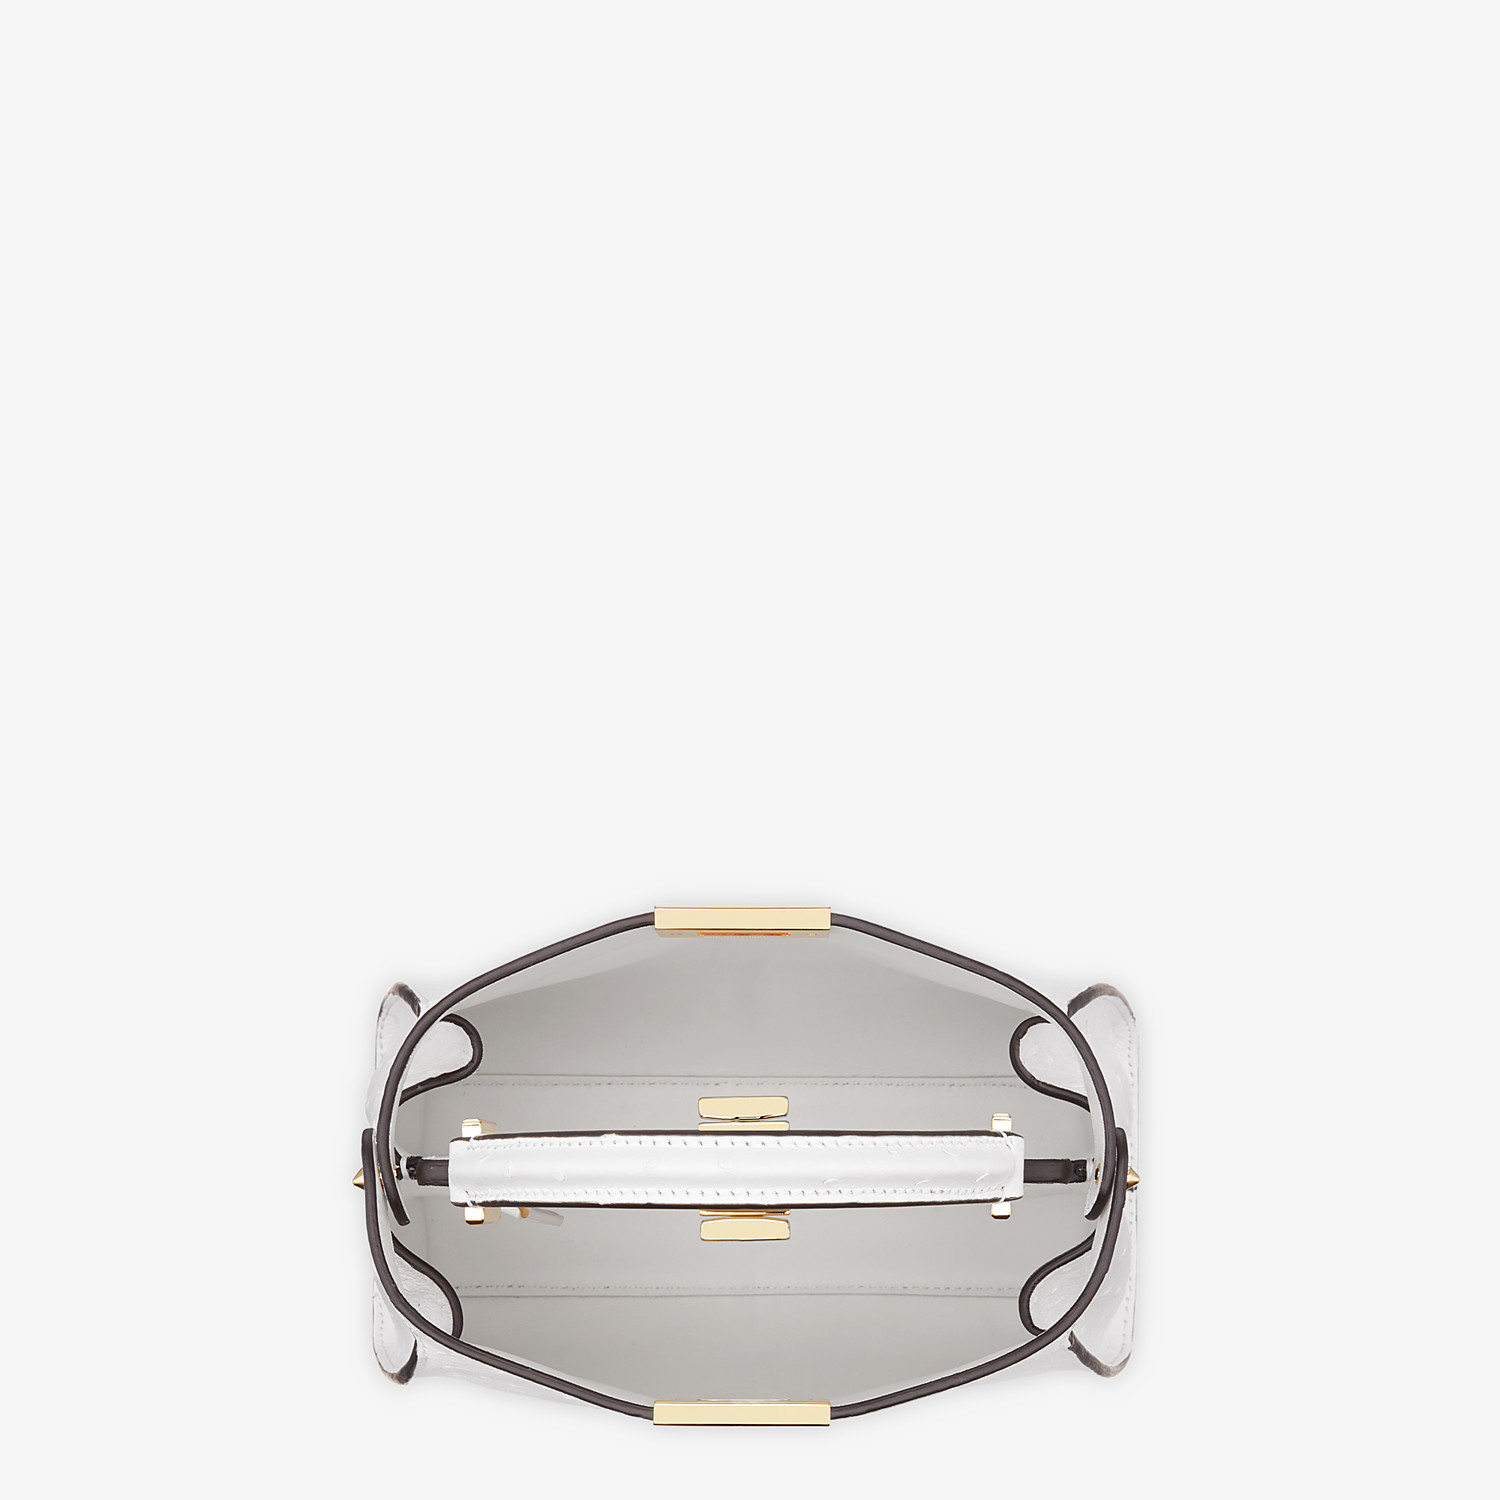 FENDI PEEKABOO ICONIC ESSENTIALLY - White ostrich leather bag - view 4 detail